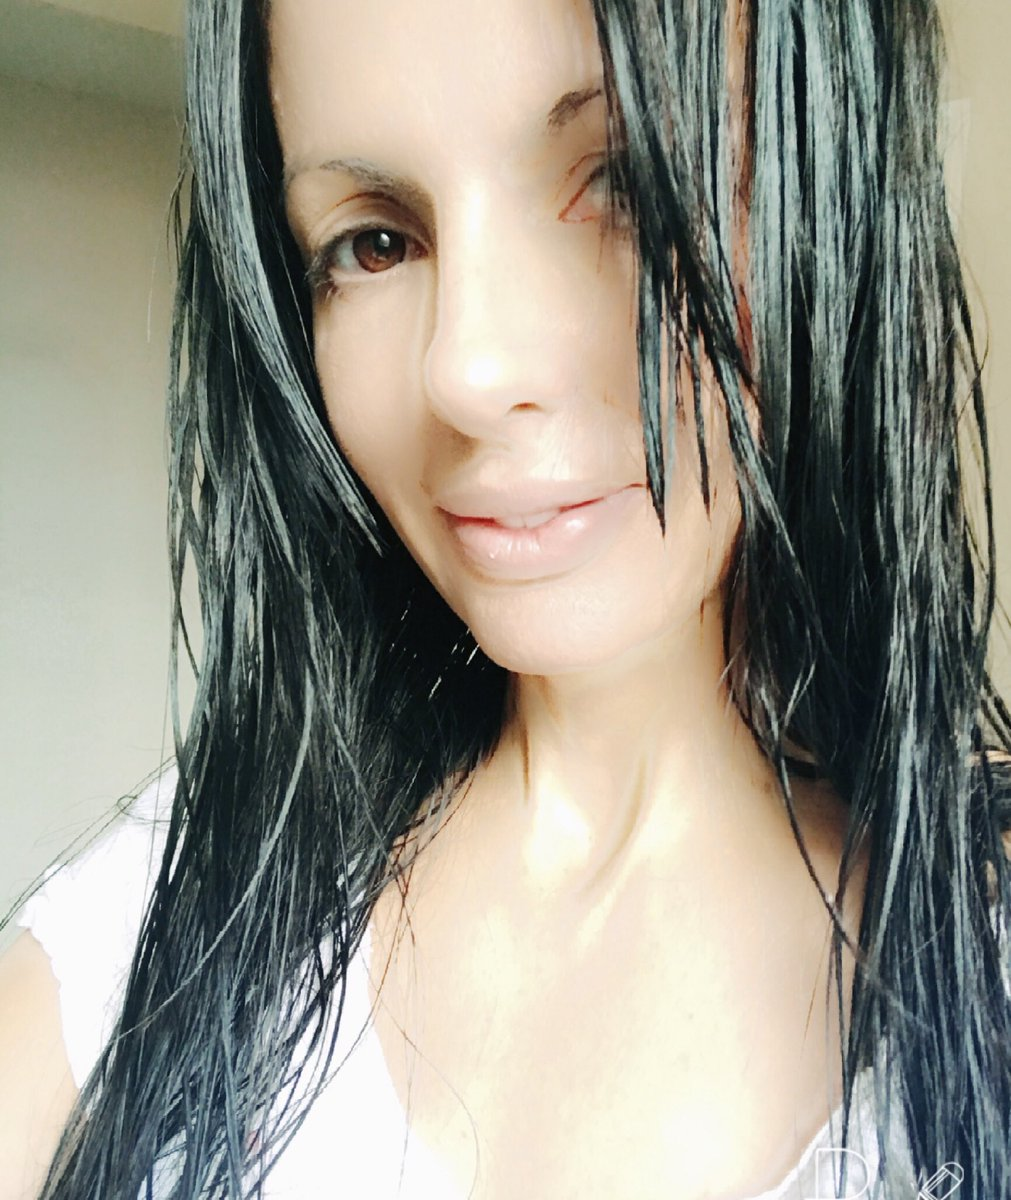 Out of the bath. My face is naked for you. Hope you all have a happy day.💕 7qXsy2elbl